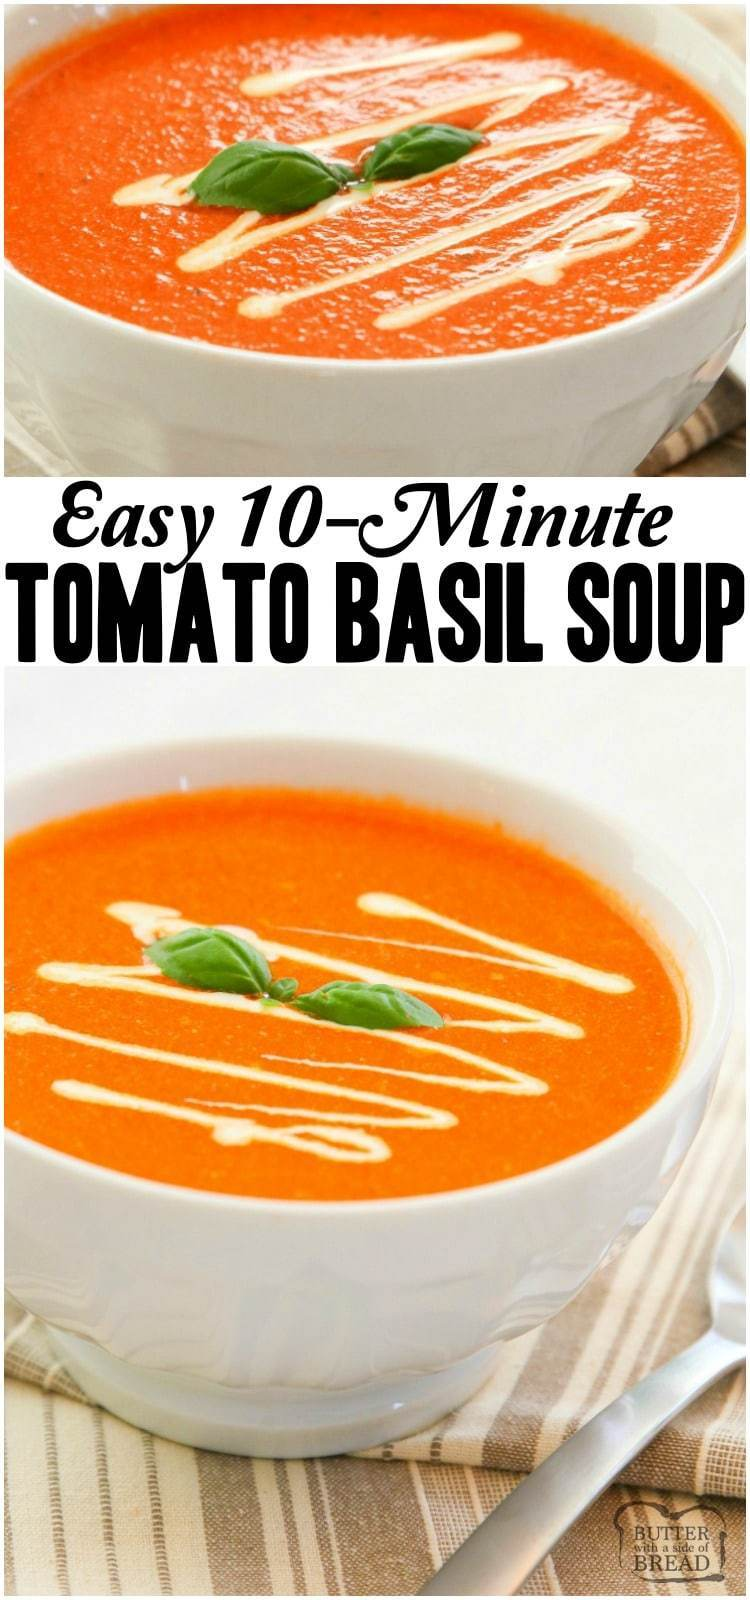 Easy 10-Minute Tomato Basil Soup recipe made with San Marzano style tomatoes, broth, fresh basil & butter. Smooth & tangy tomato soup that comes together fast. Perfect for a quick weeknight meal or lunch. #tomato #soup #basil #easysoup #tomatosoup #recipe #easyrecipe #lunch #meatless from BUTTER WITH A SIDE OF BREAD